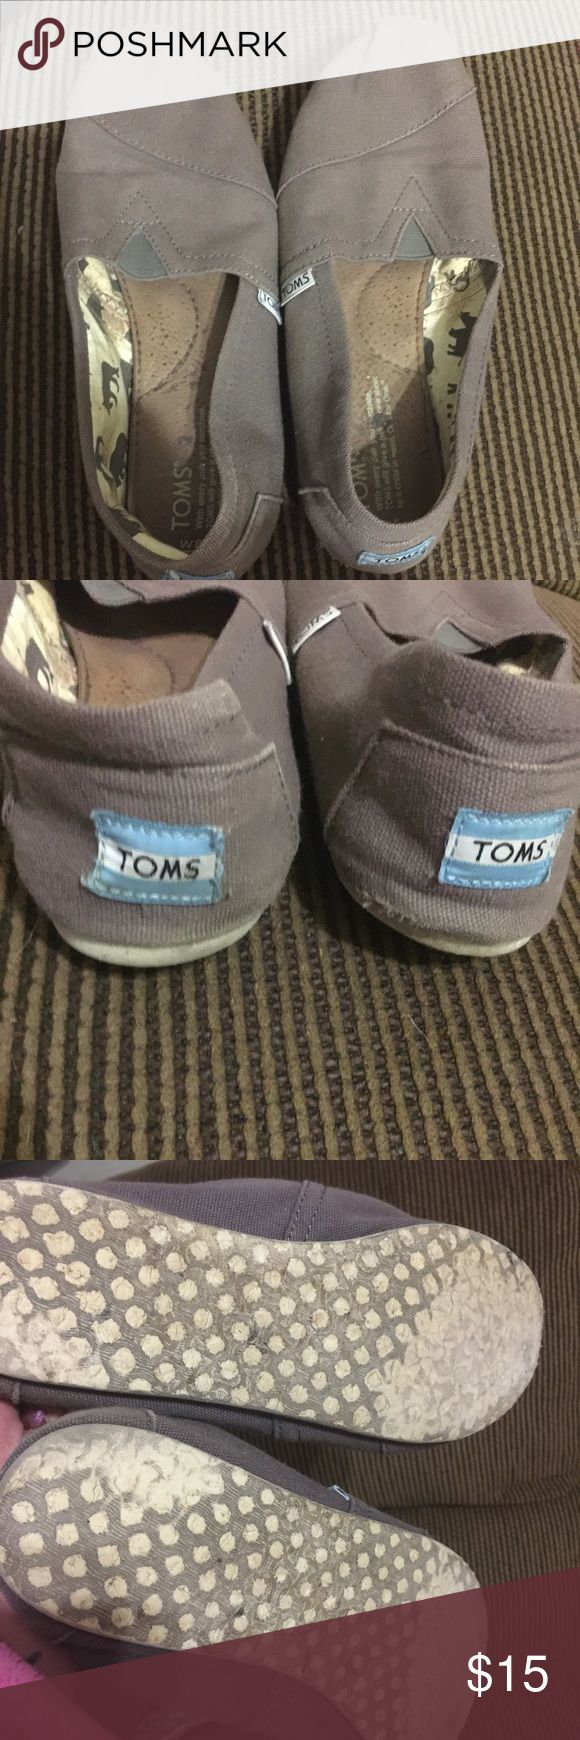 Gray TOMS slip one. Gray TOMS slip ons. Some wear but in good condition otherwise. TOMS Shoes Sneakers